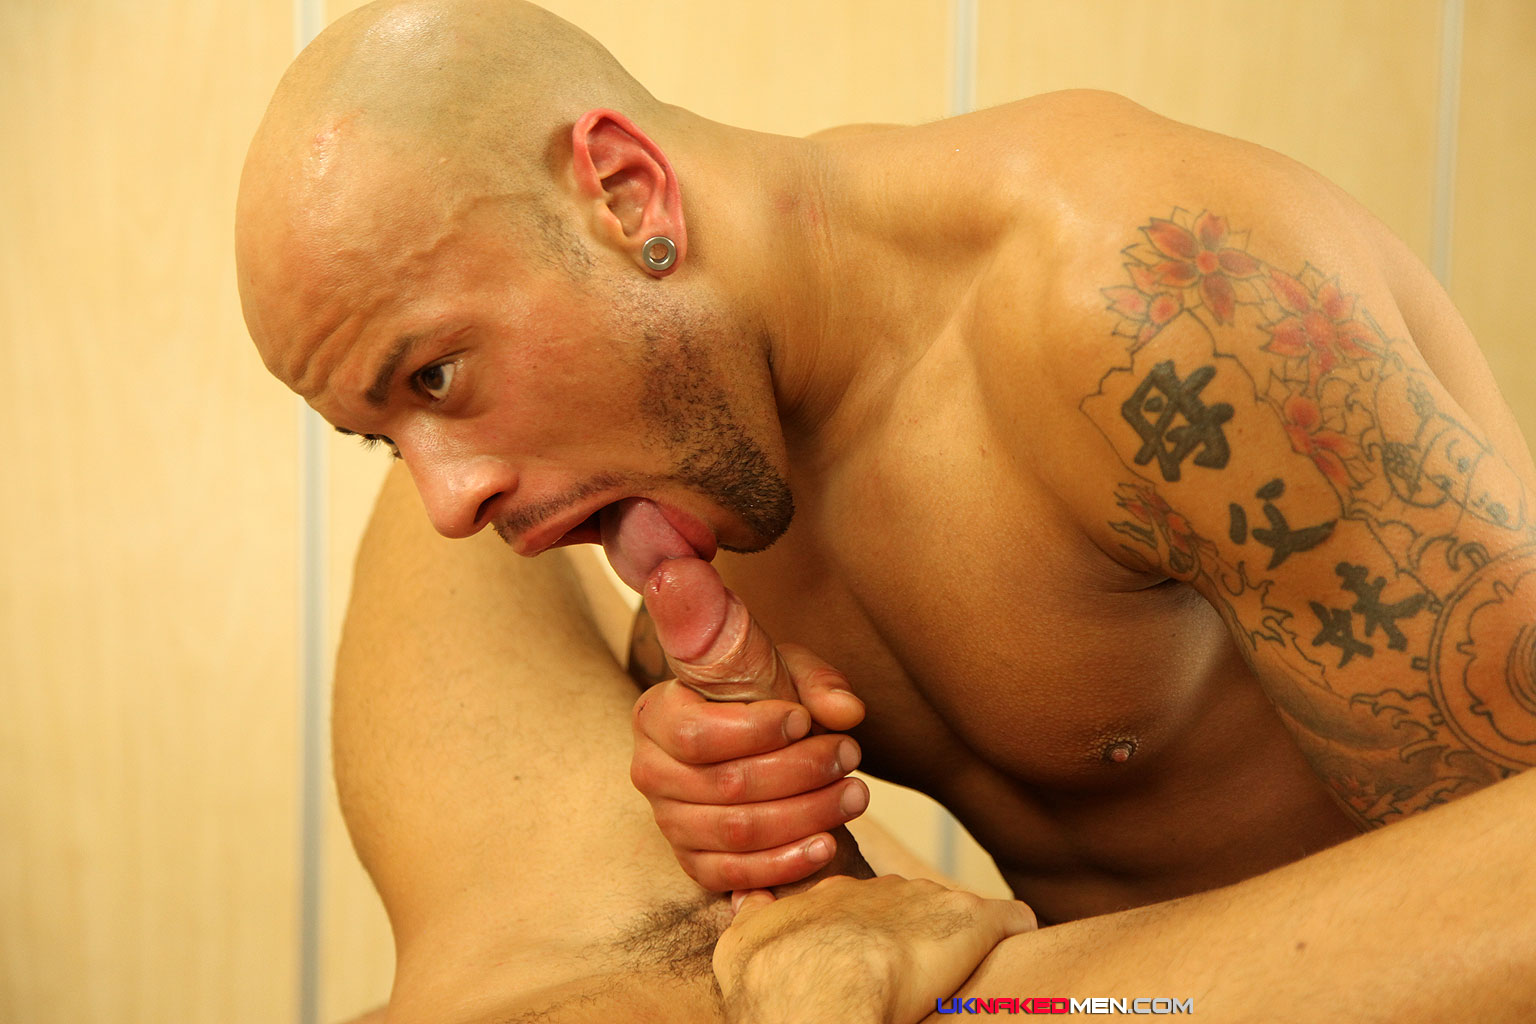 UK-Nakedmen-Brandon-Jones-and-Ken-Ten-Muscle-Men-with-Big-Uncut-Cocks-Fucking-Massage-Fucking-23 Amateur Massage Turns Into Getting Fucked By A Big Uncut Cock